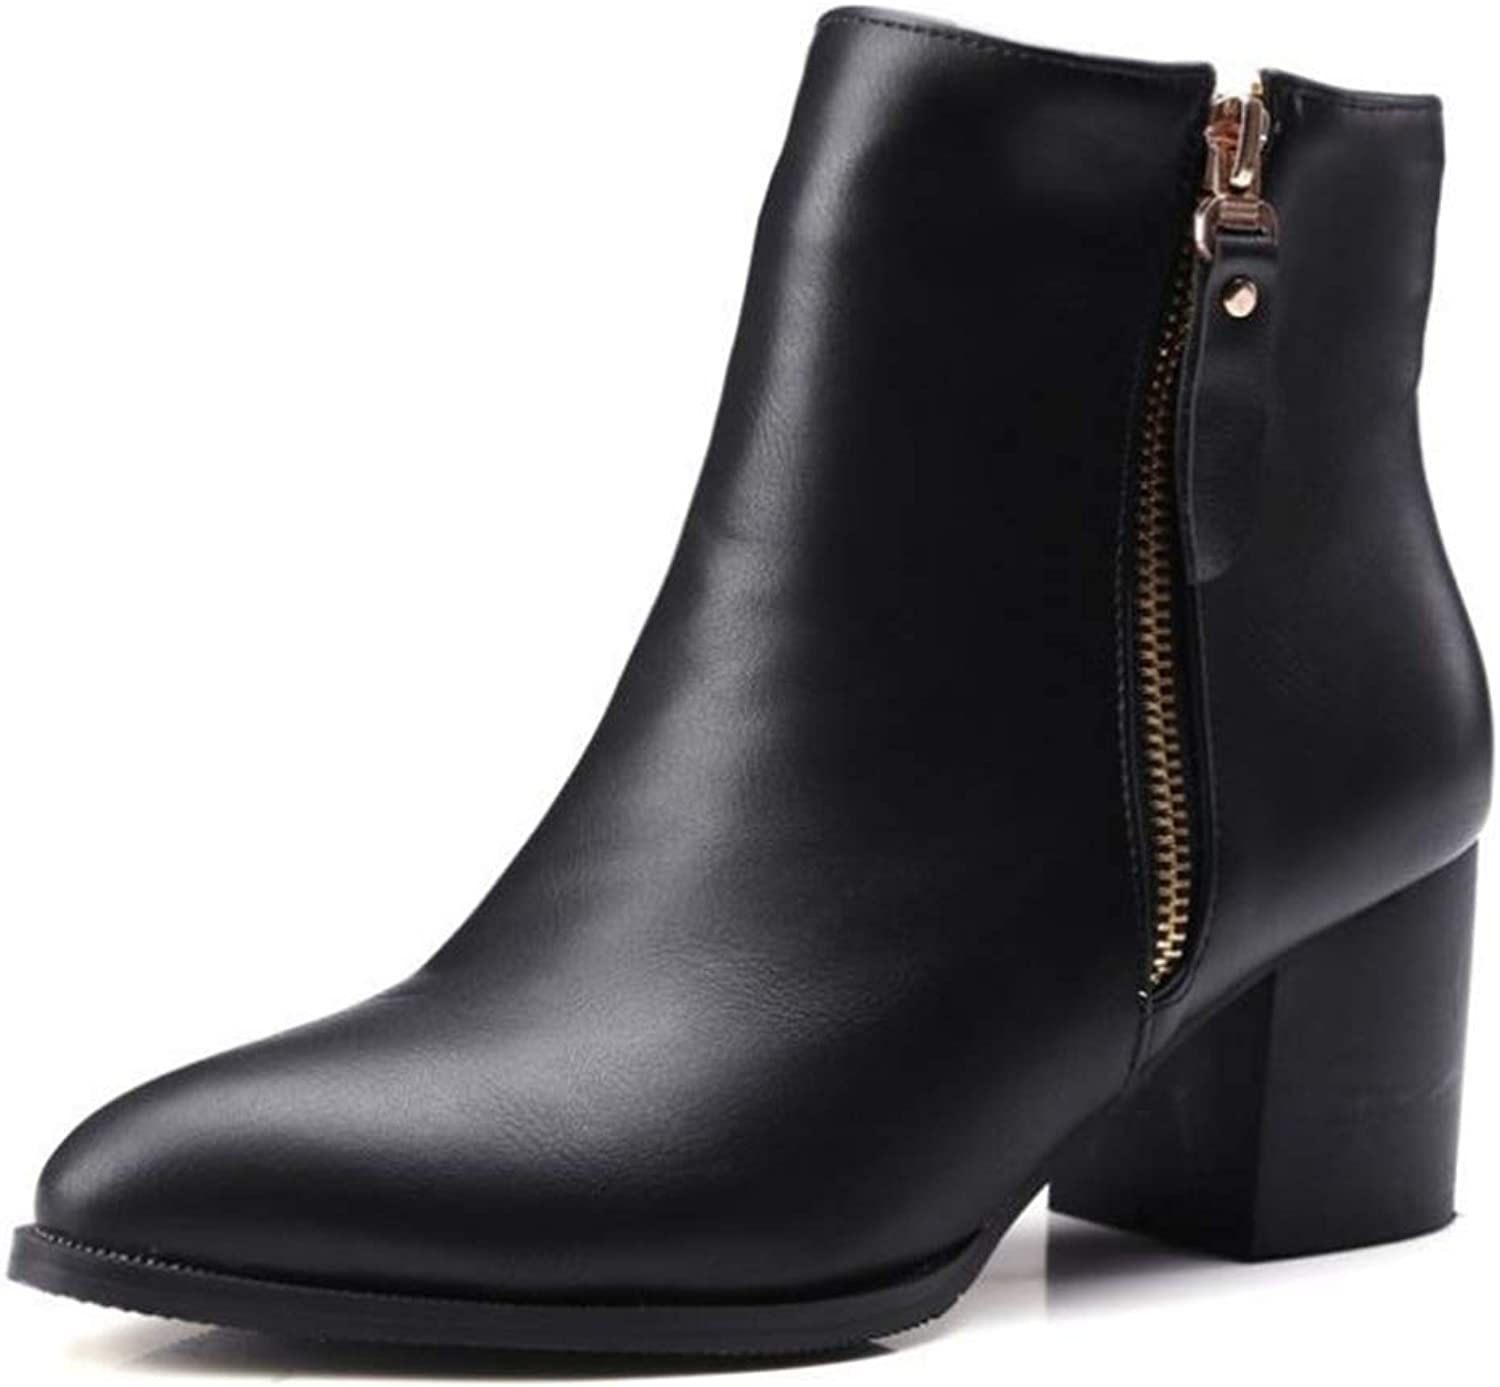 Quality.A Autumn and Winter New Martin Boots Elegant Women's Boots with Ankle Boots